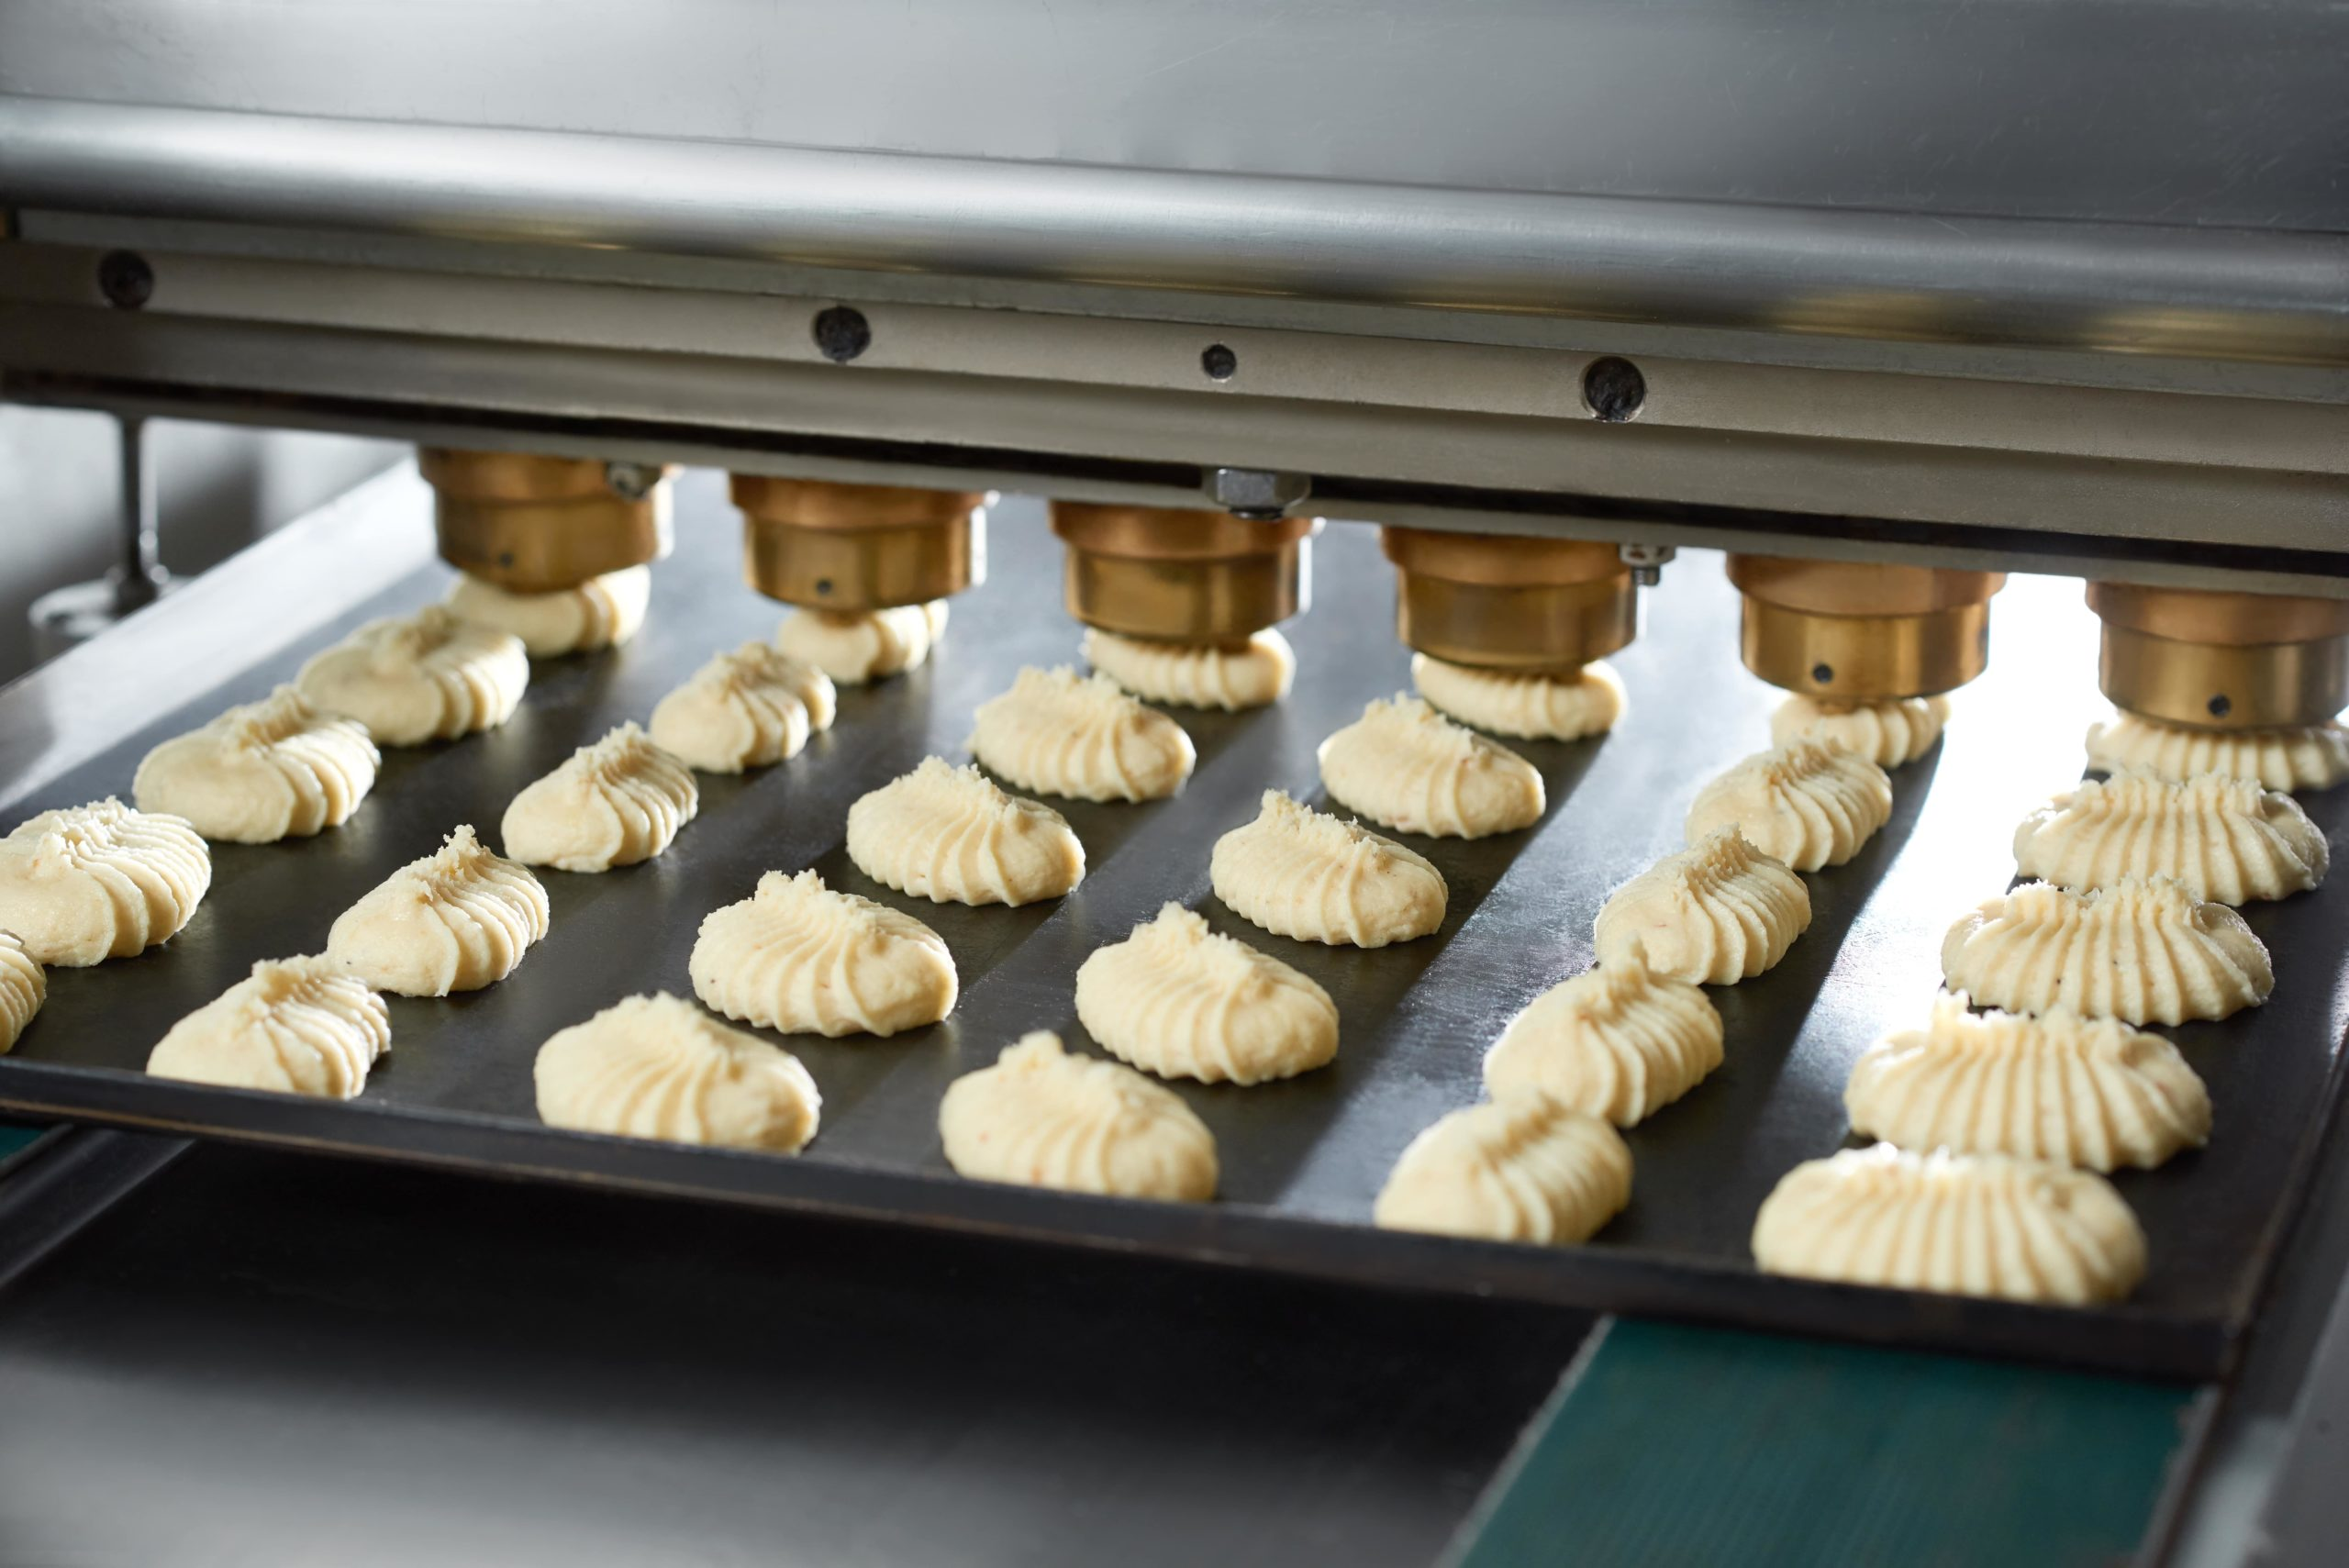 close-up-conveyor-line-s-equipment-making-little-identical-cakes-from-raw-dough-they-lie-black-dish-conveyor-line-bakery-min